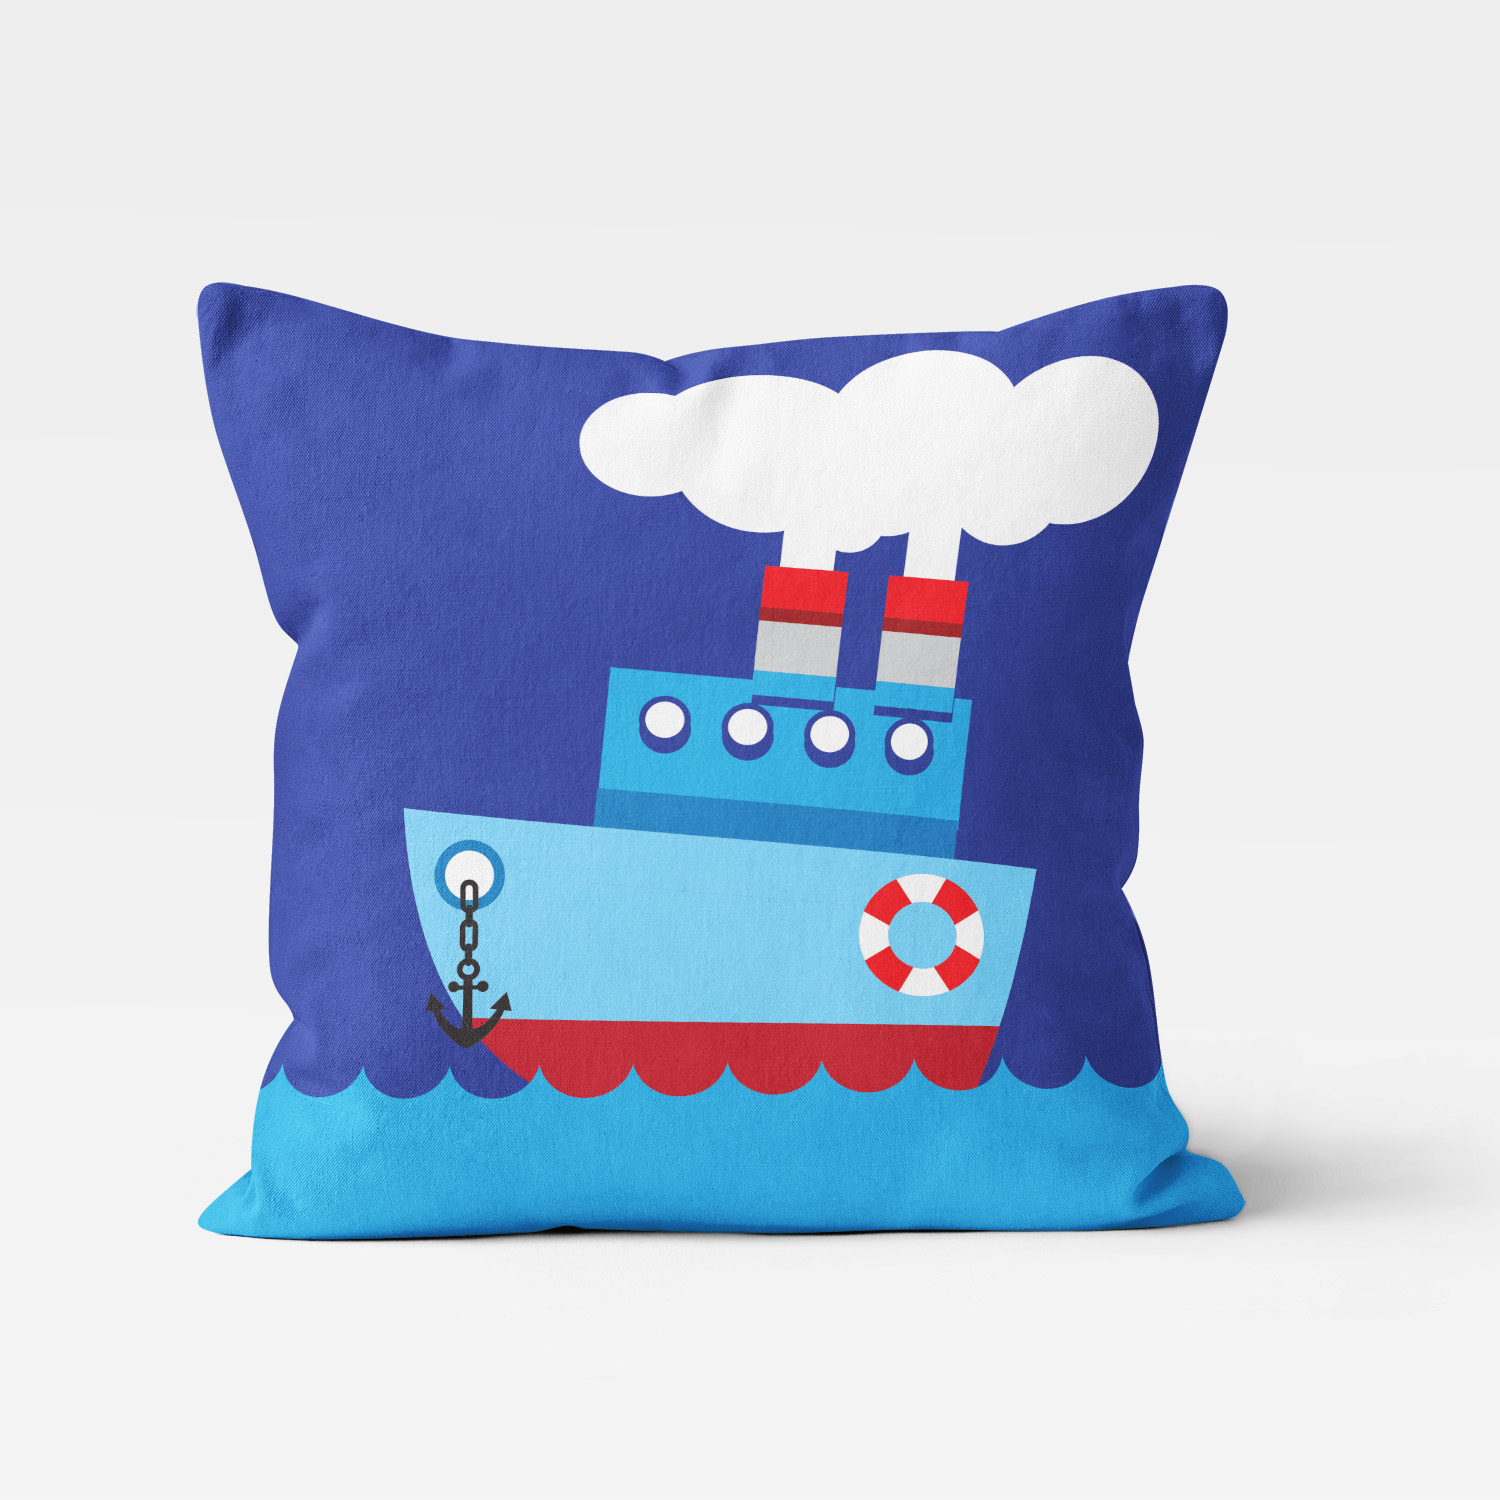 PKTP-00008-OceanAdventures-THROWPILLOW Ocean Adventures Nautical Theme Tug Boat Boys Kids Accent Throw Pillow Room Decor Accessories by Pickleberry Kids